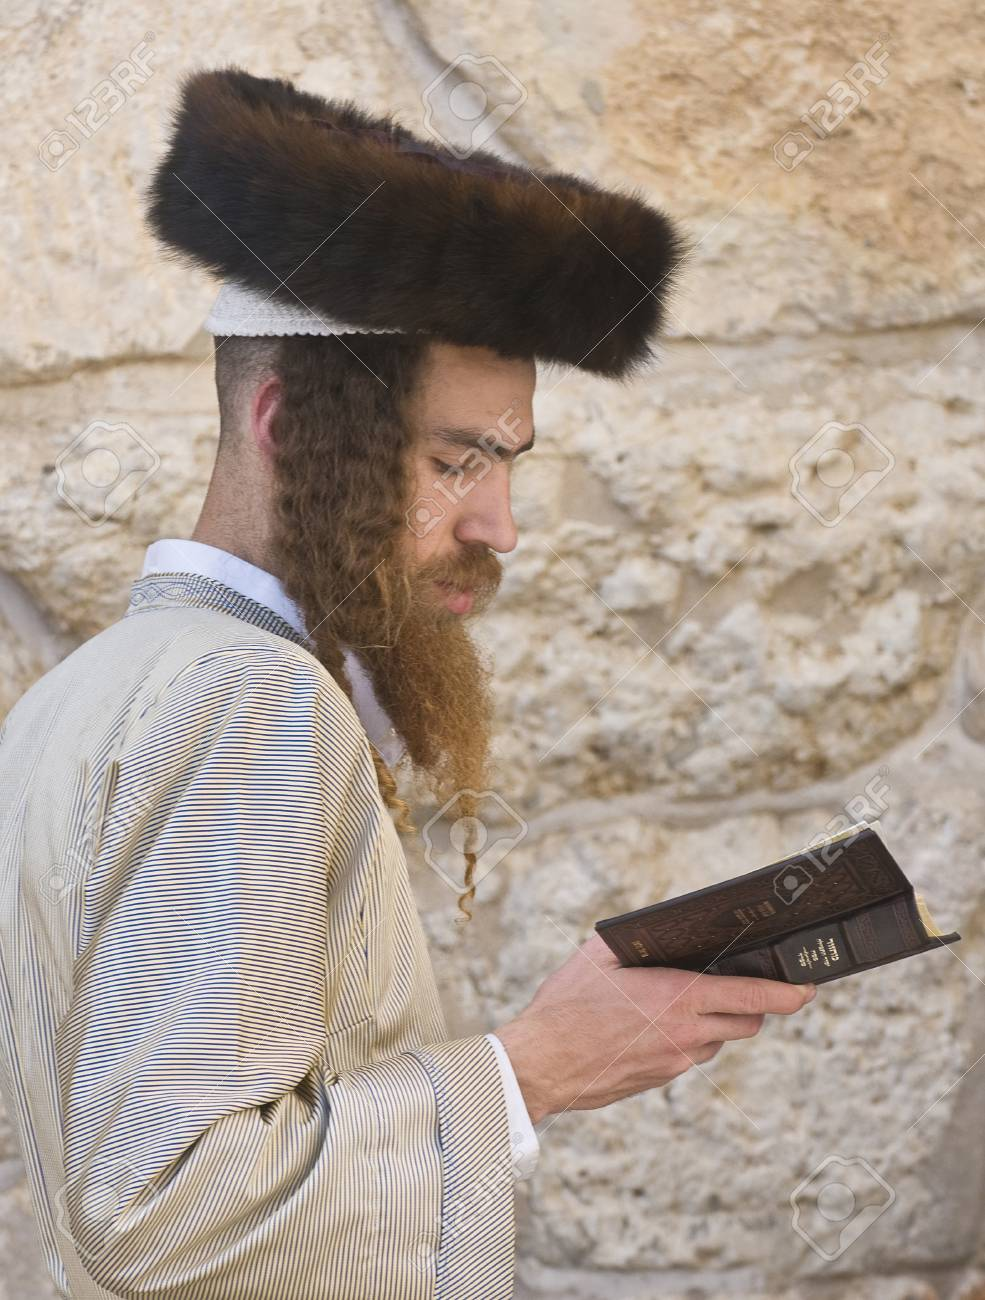 JERUSALEM - APRIL 08 : Orthodox jewish men prays in The western wall during Passover on April 08 2012 , The Western wall is important Jewish religious site located in the Old City of Jerusalem  Stock Photo - 14418255